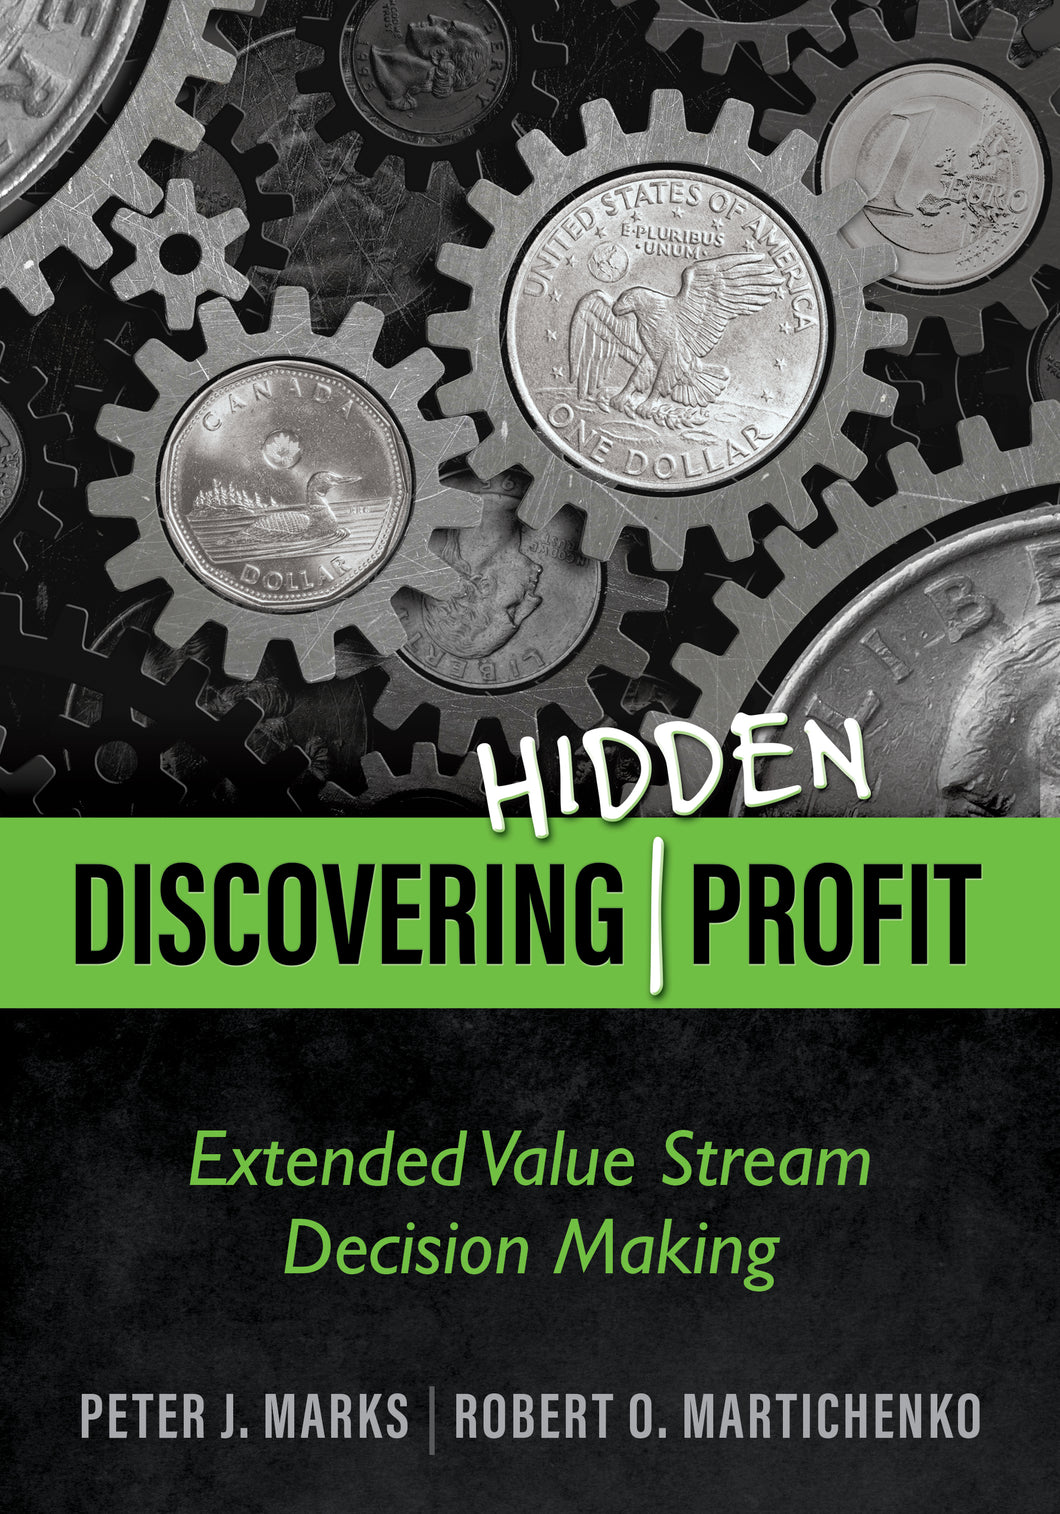 Discovering Hidden Profit: Extended Value Stream Decision Making (HARDCOPY)